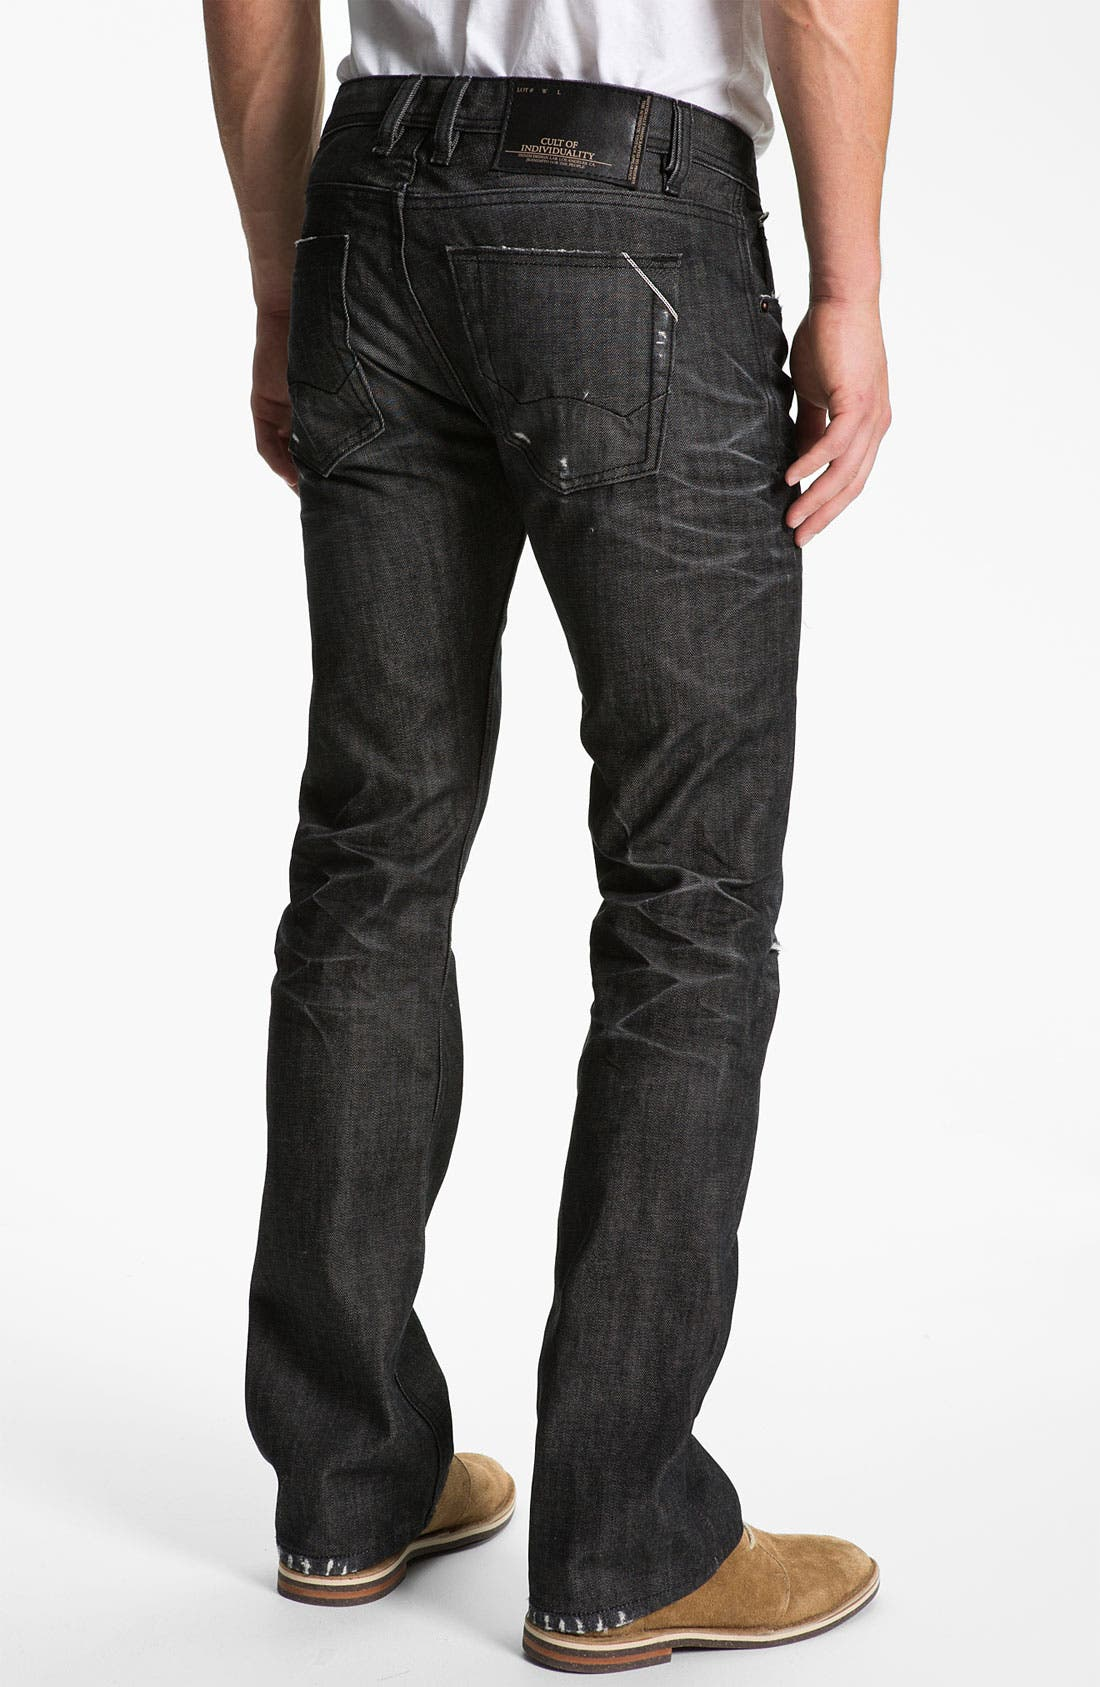 Alternate Image 1 Selected - Cult of Individuality 'Hagen' Relaxed Straight Leg Jeans (Black)